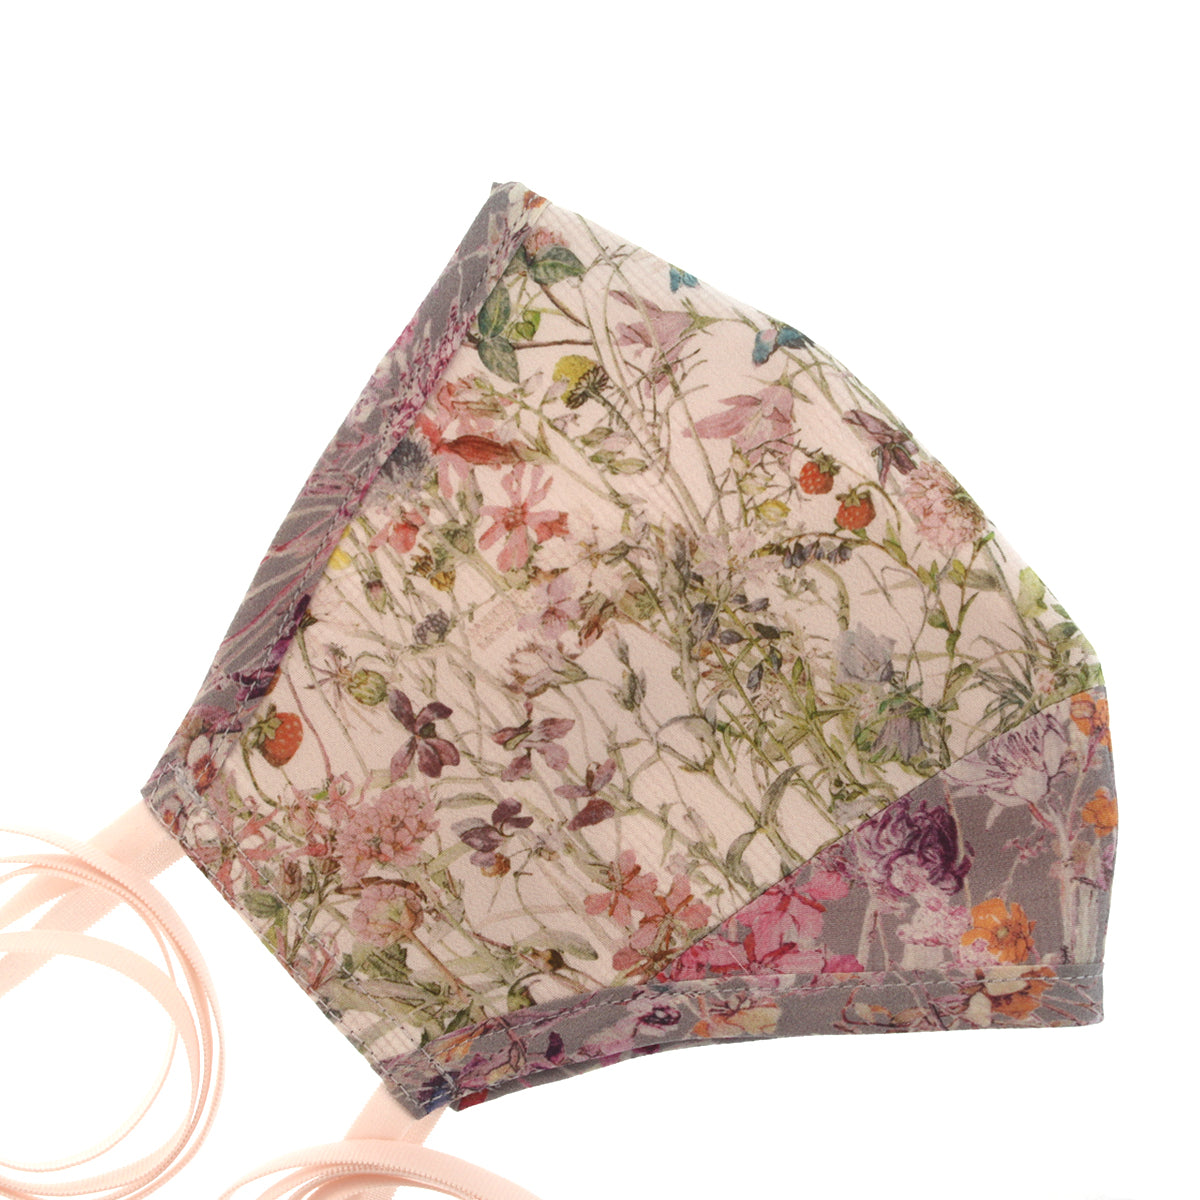 A Liberty Print Face Mask in Cream + Lavender Floral Silk